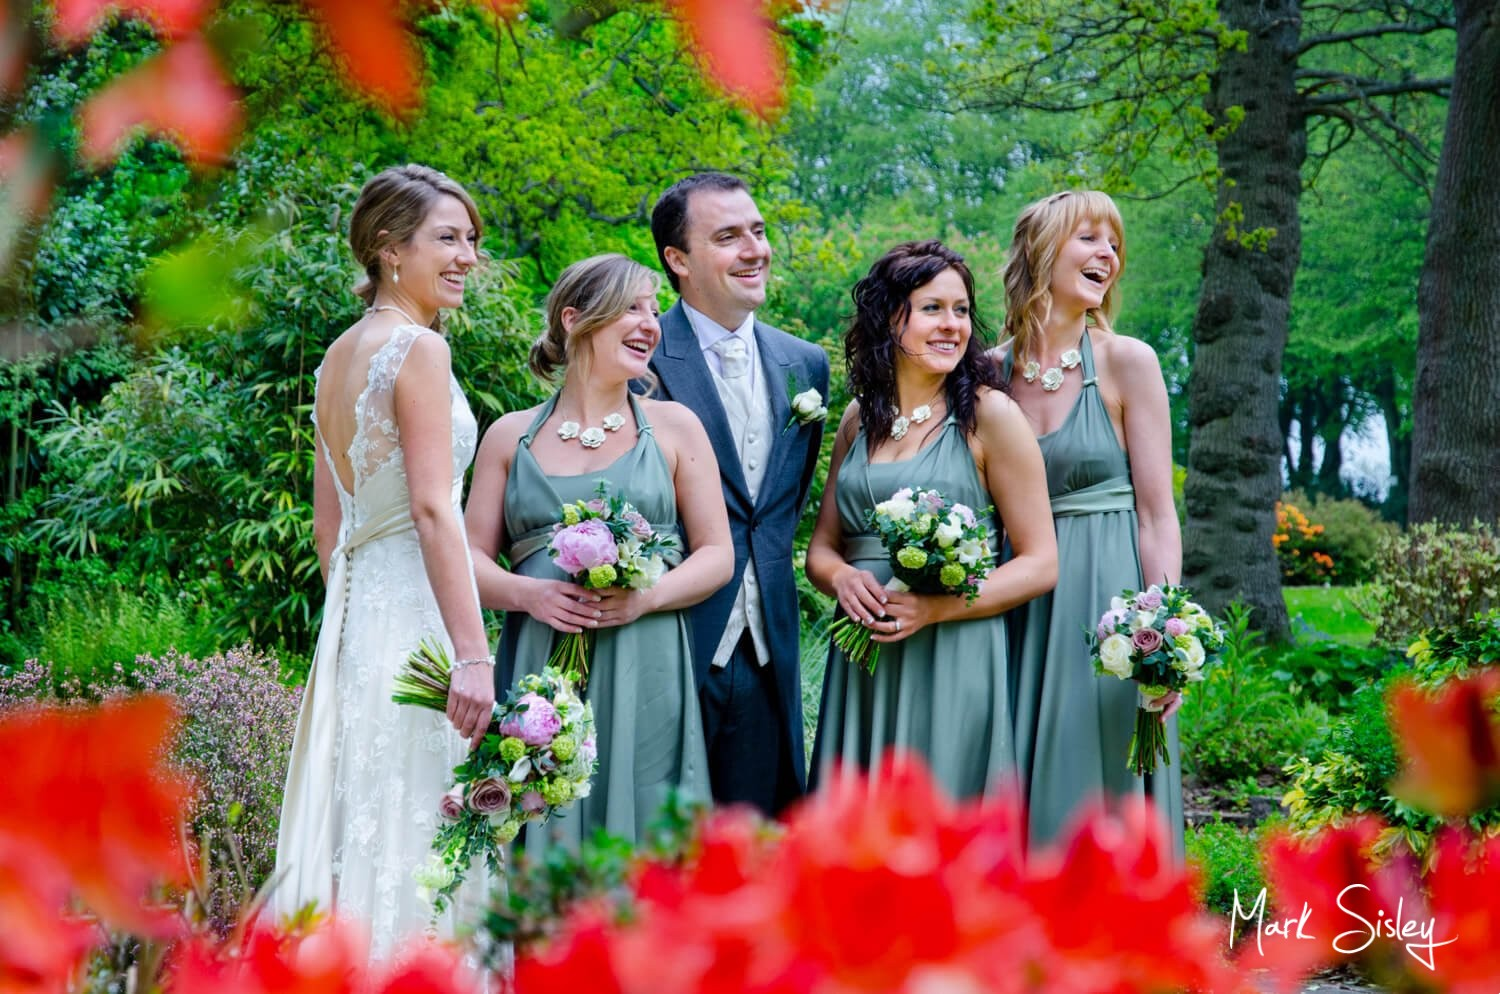 Bride and groom and bridesmaids in mint green dresses with rhododendrons in the foreground at Chartridge Lodge by Mark Sisley Photography